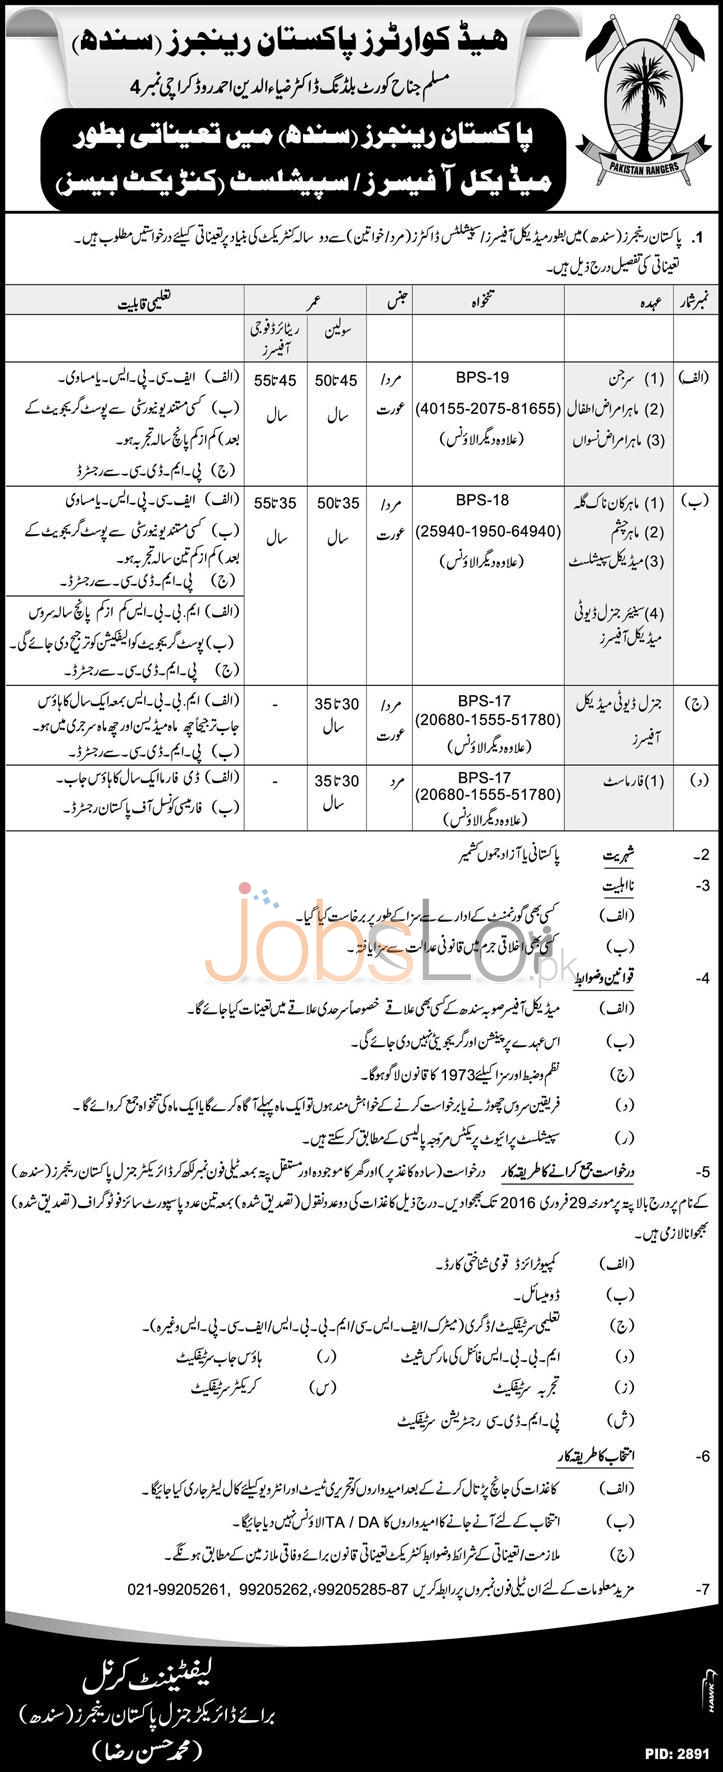 Pakistan Rangers Jobs 21 February 2016 Sindh For Medical Officers & Specialists Latest Advertisement